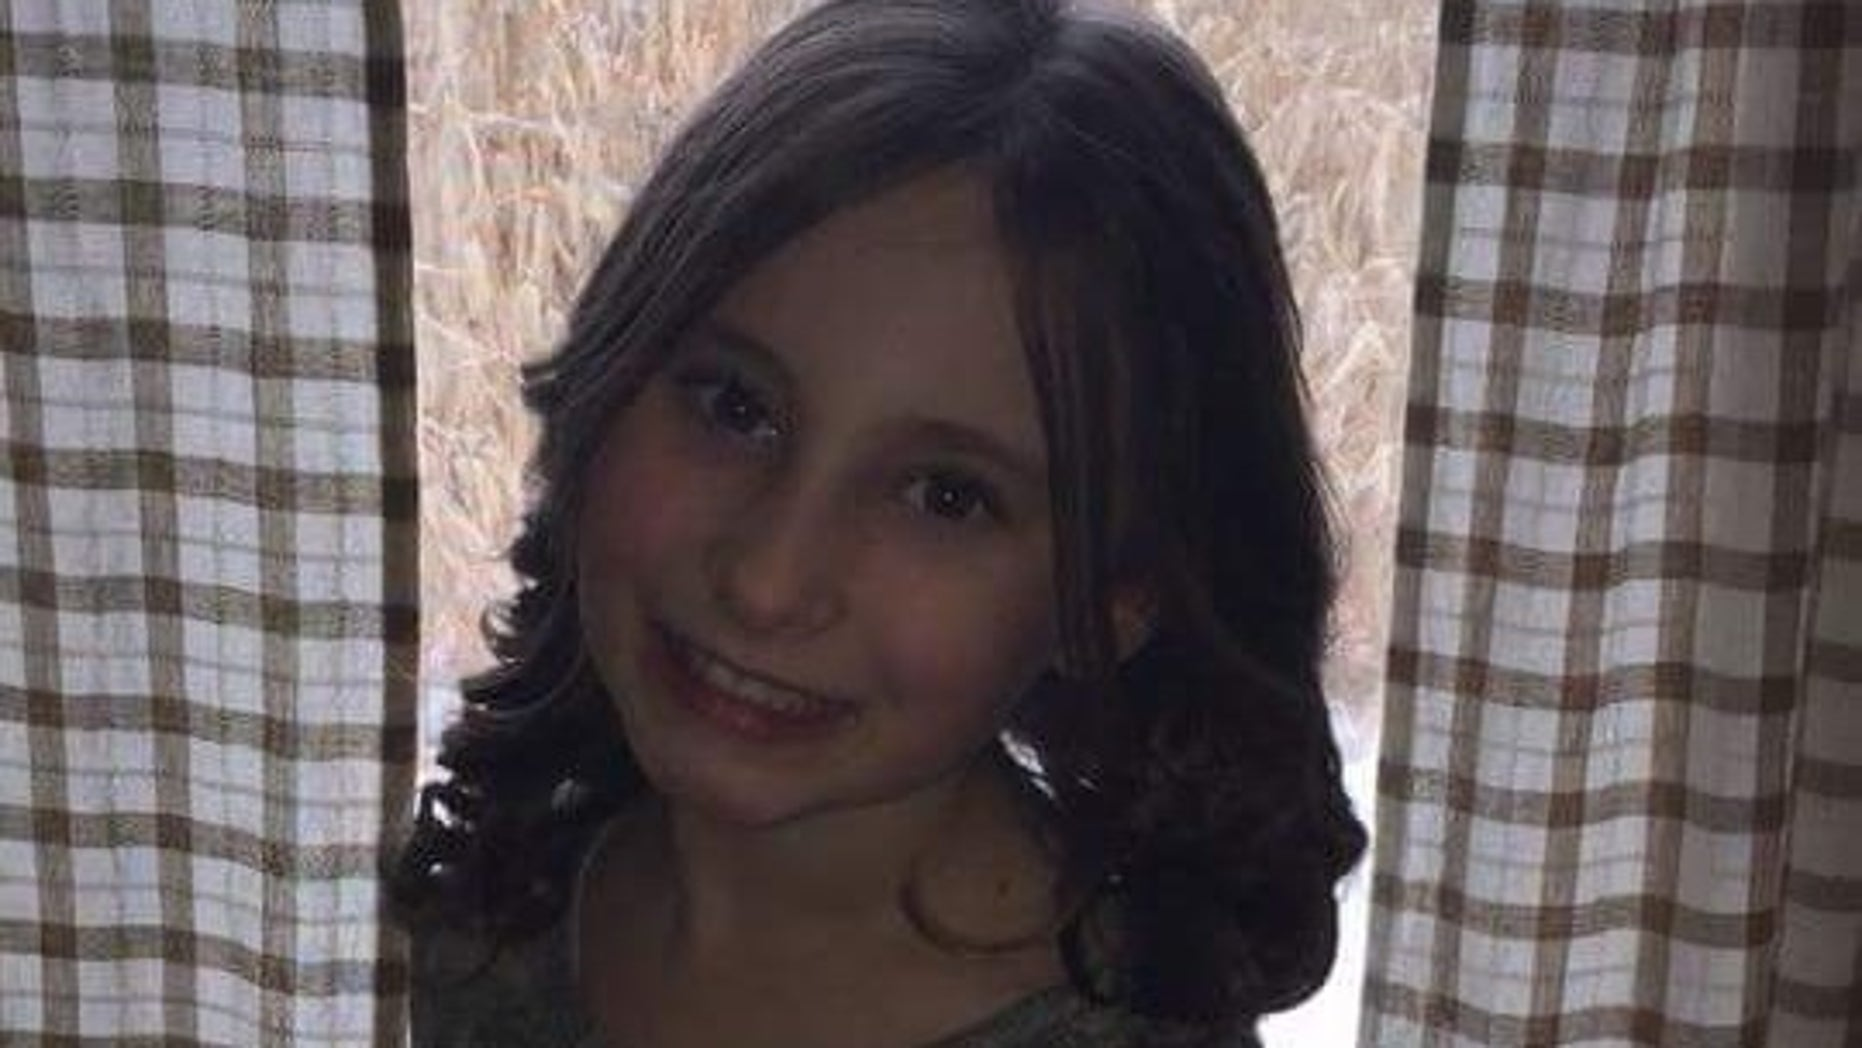 Sophia Daugherty, a Type 1 diabetic, was a sleepover at her friend's last weekend when she suffered a severe drop in blood sugar, her family said.